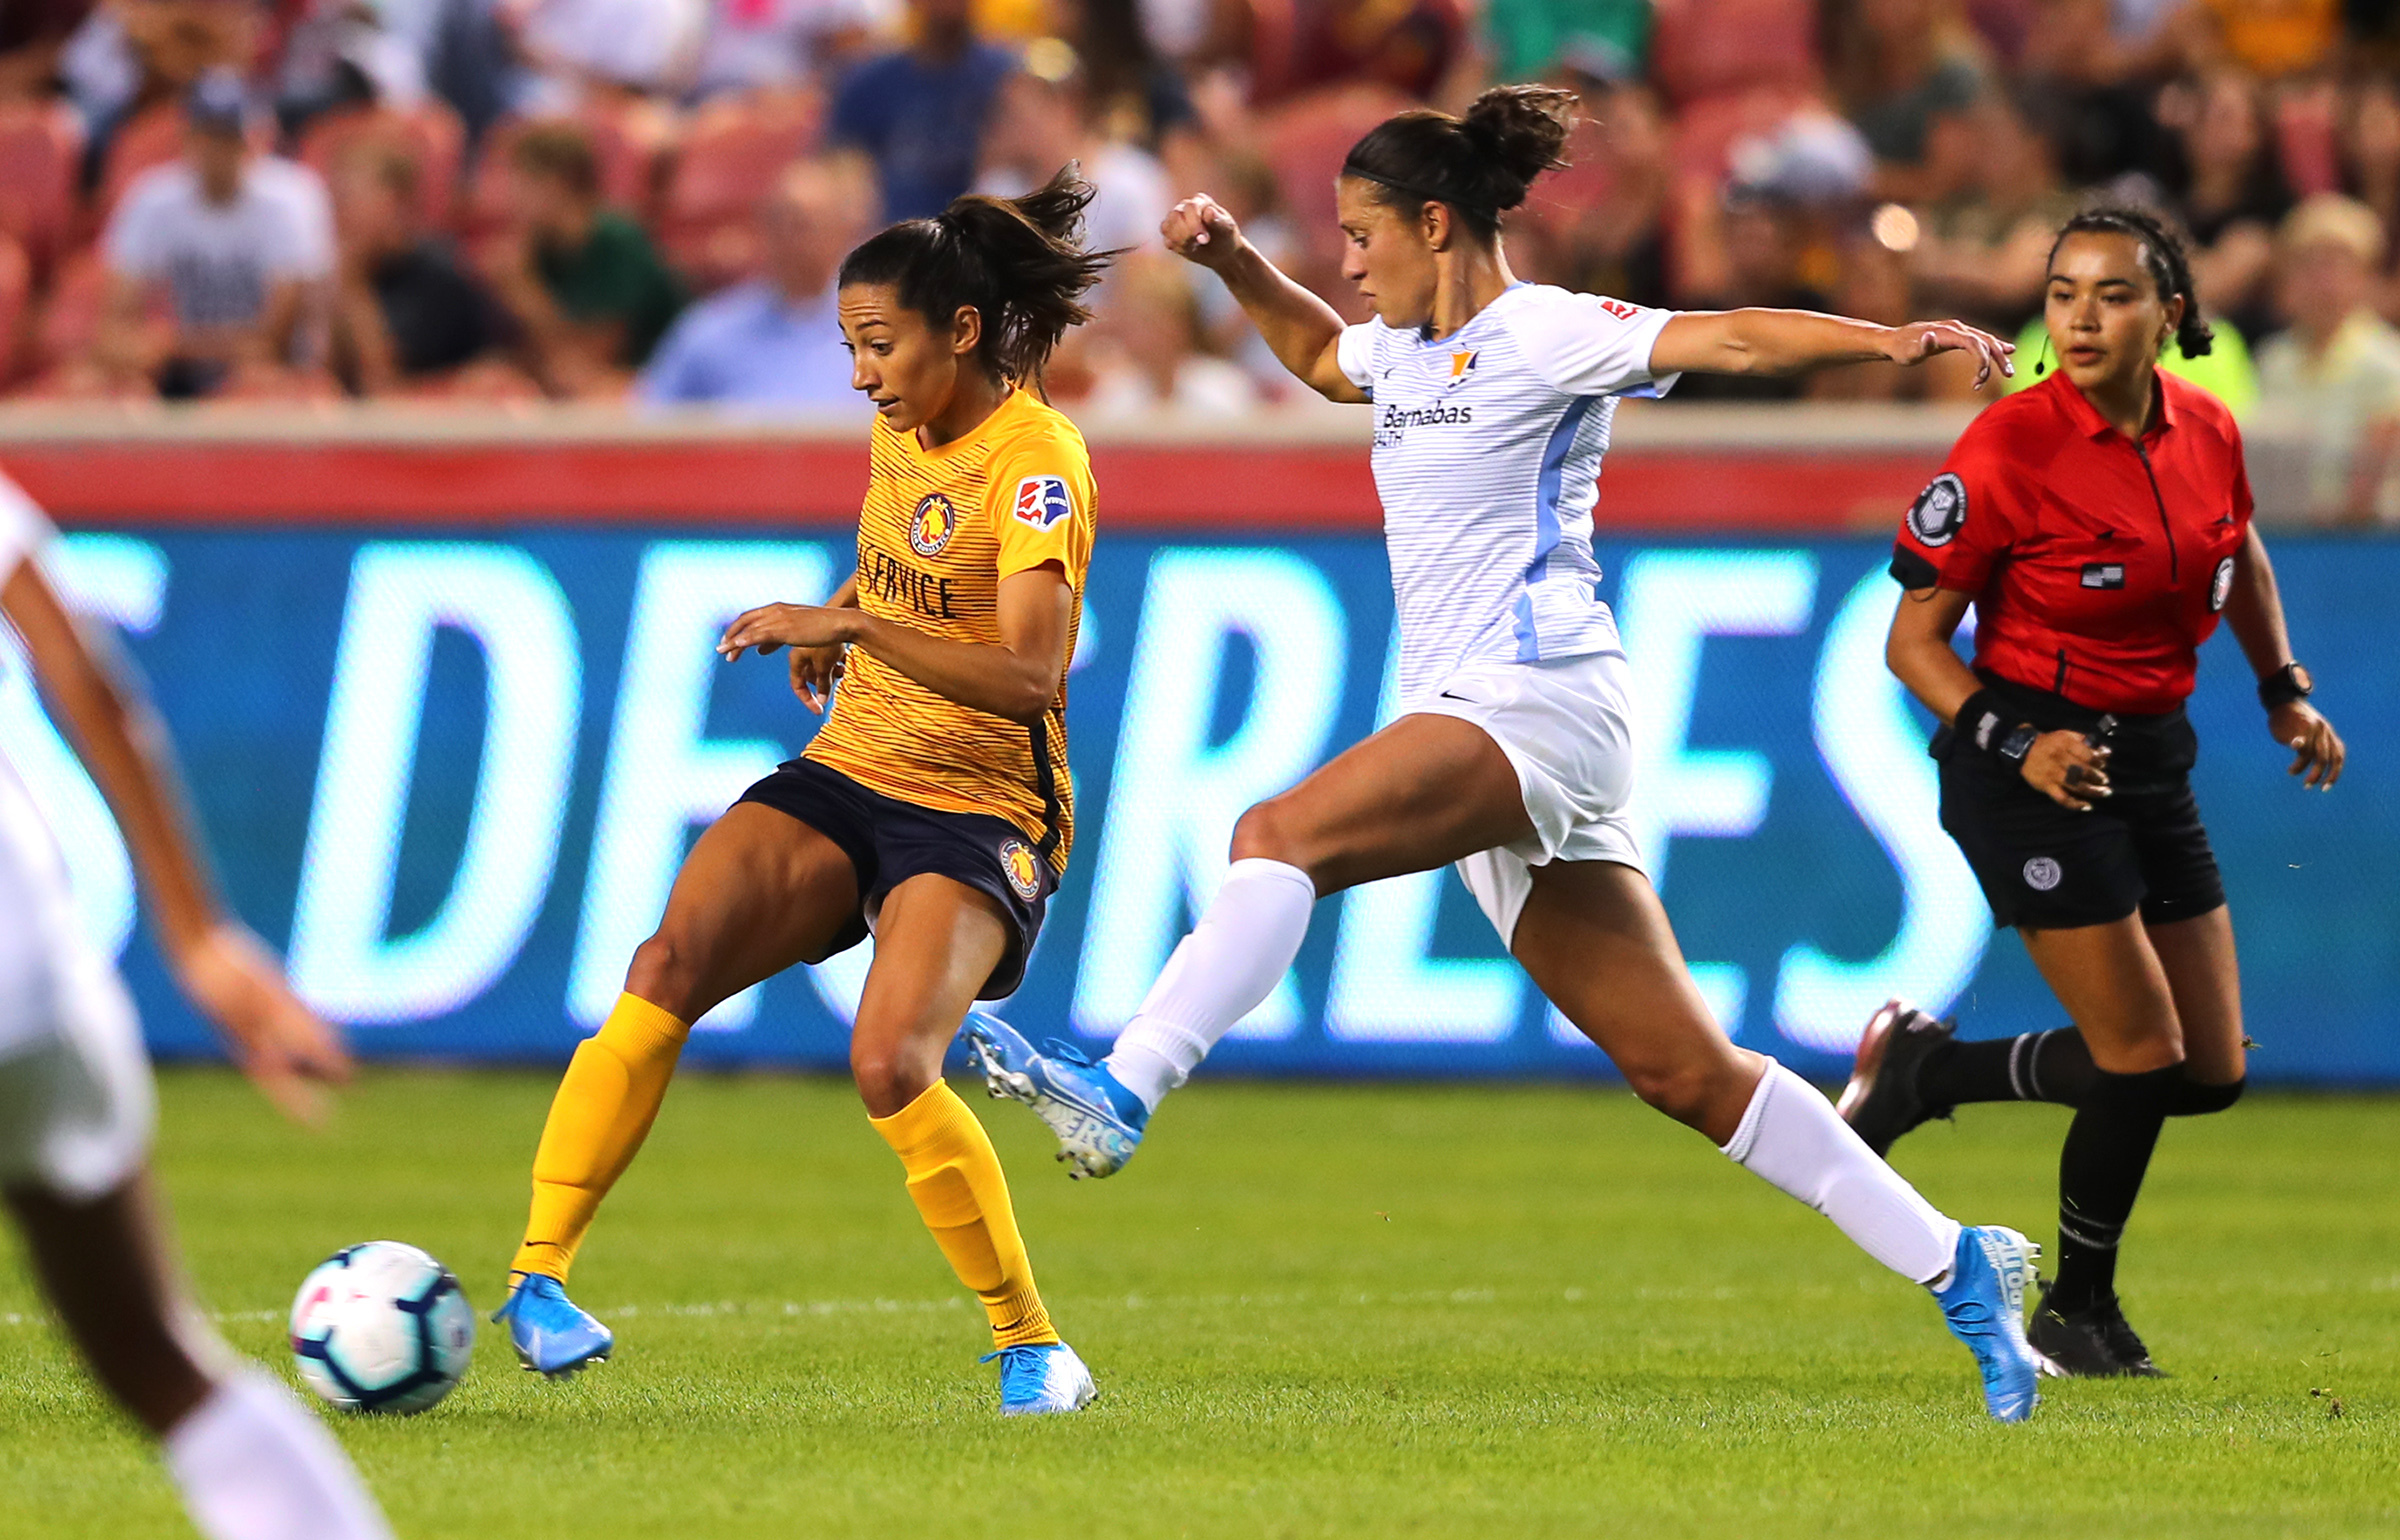 Utah Royals FC forward Christen Press (23) taps the ball away as Sky Blue FC midfielder Carli Lloyd (10) rushes in as the Salt Lake Royals and Sky Blue FC play at Rio Tinto Stadium in Sandy on Wednesday, Aug. 7, 2019.